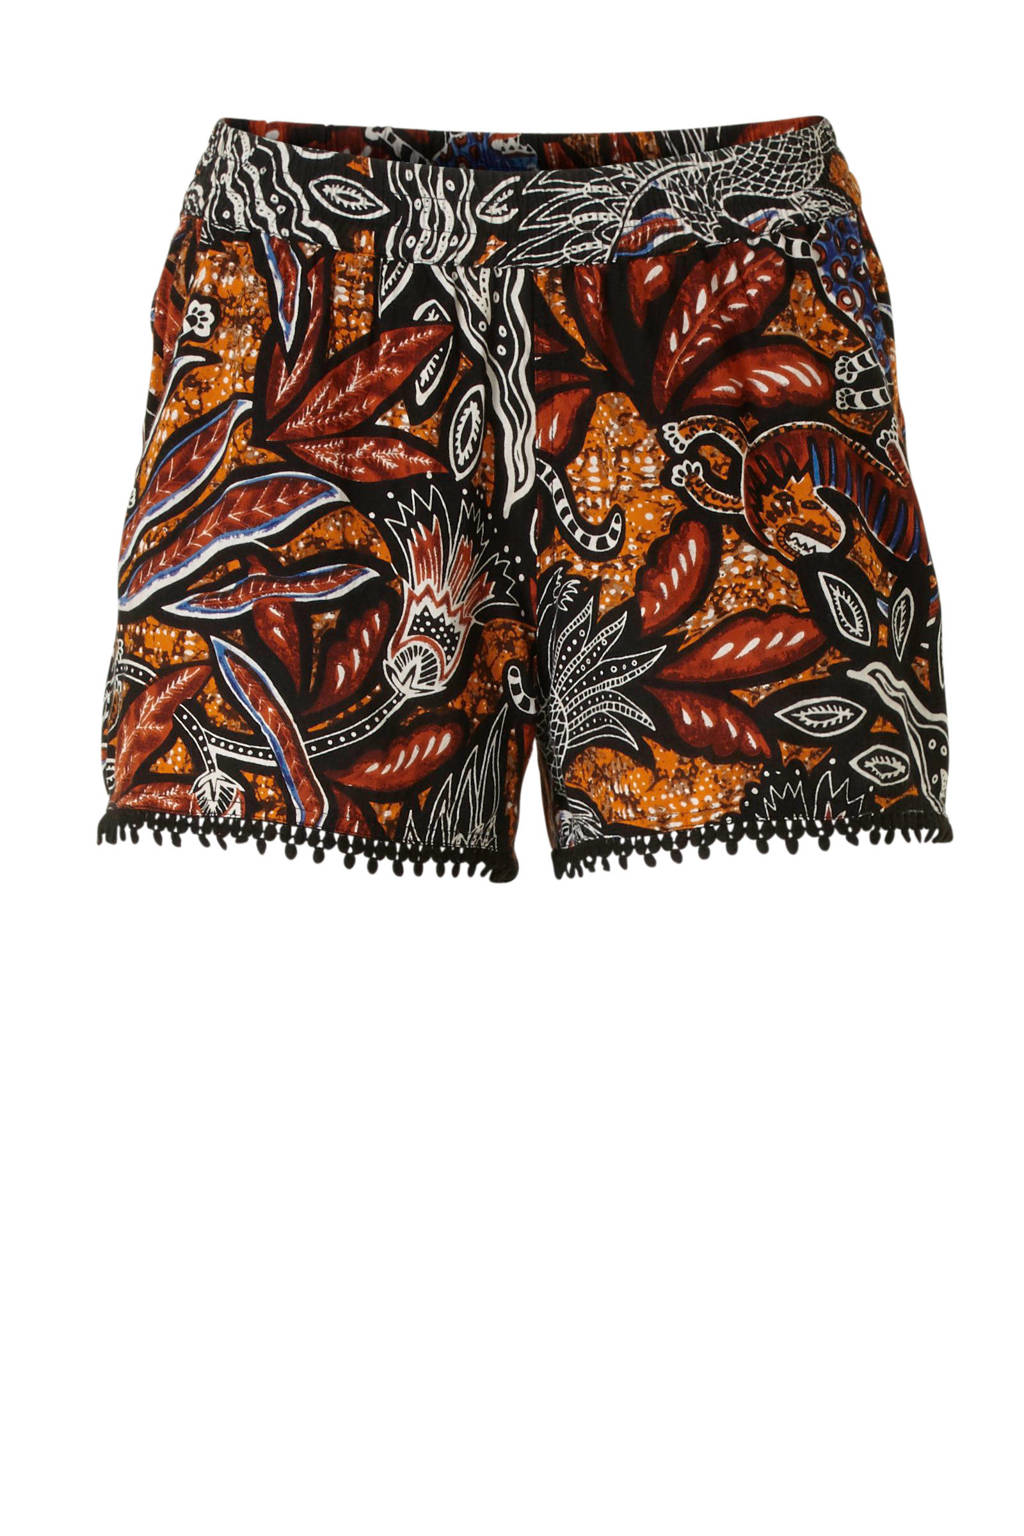 whkmp's beachwave regular fit short met all over print bruin/zwart/oranje, Bruin/Zwart/Oranje